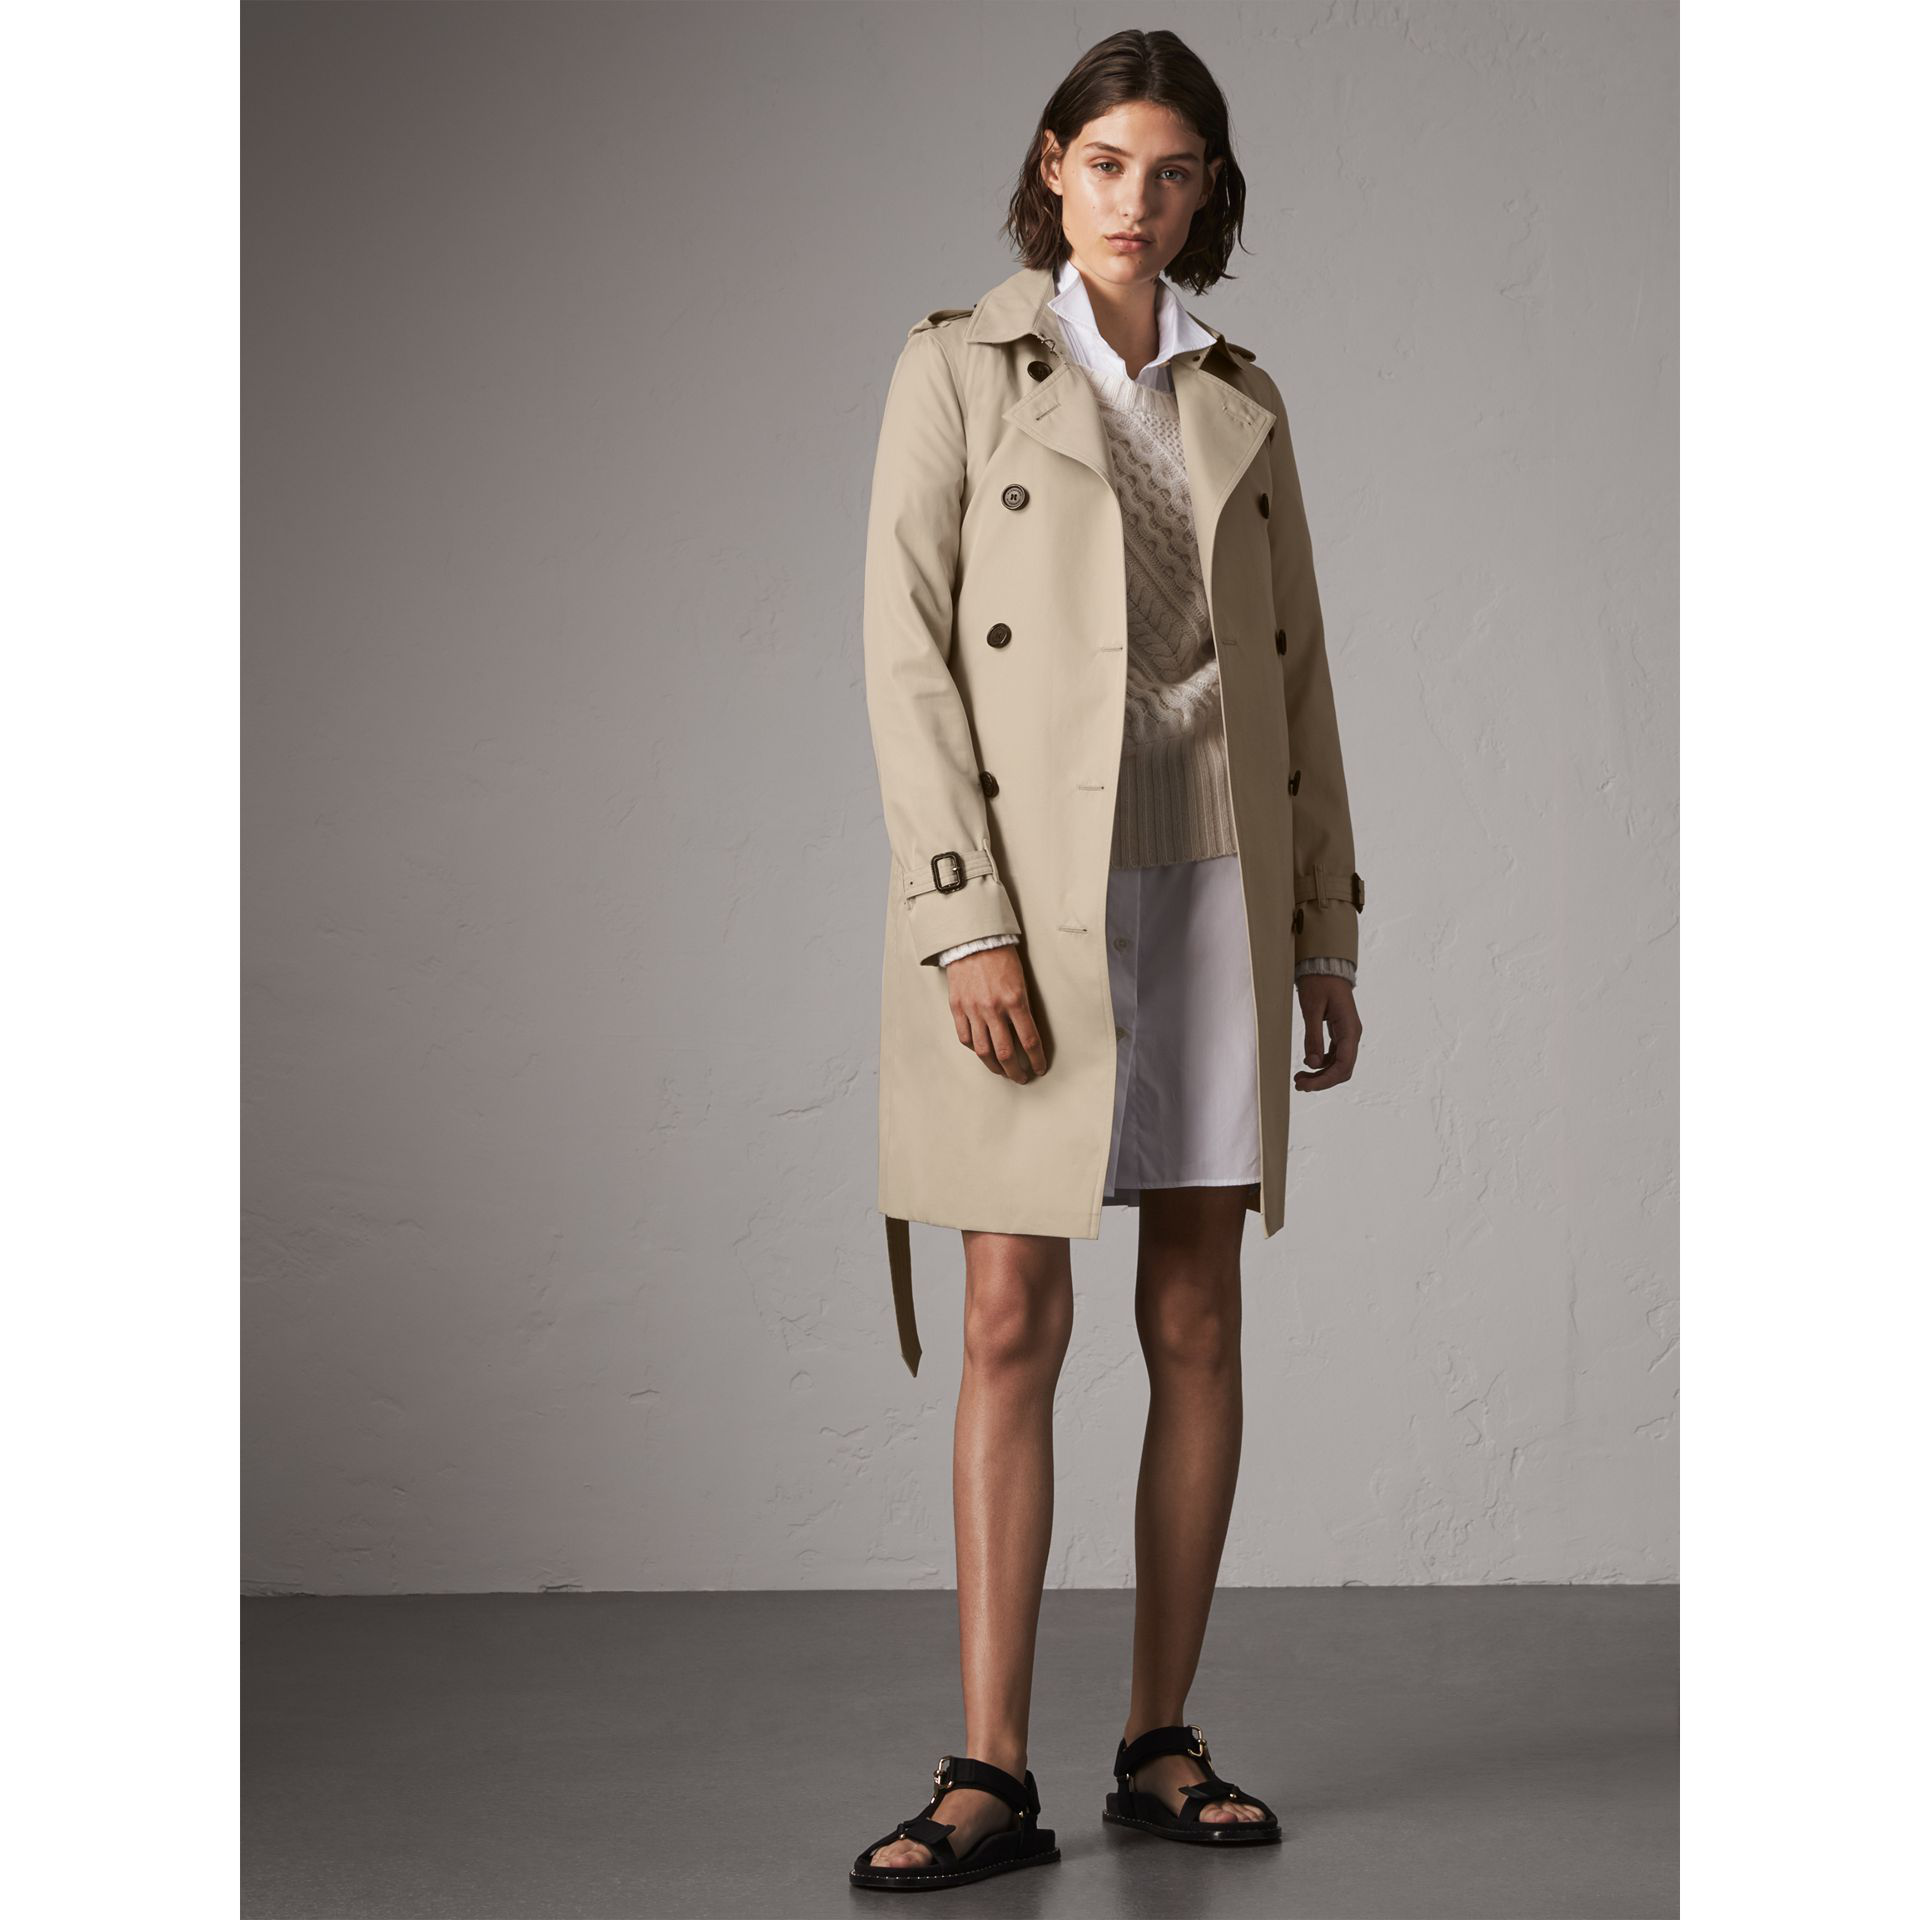 5c02462c2 The Kensington – Long Trench Coat in Stone